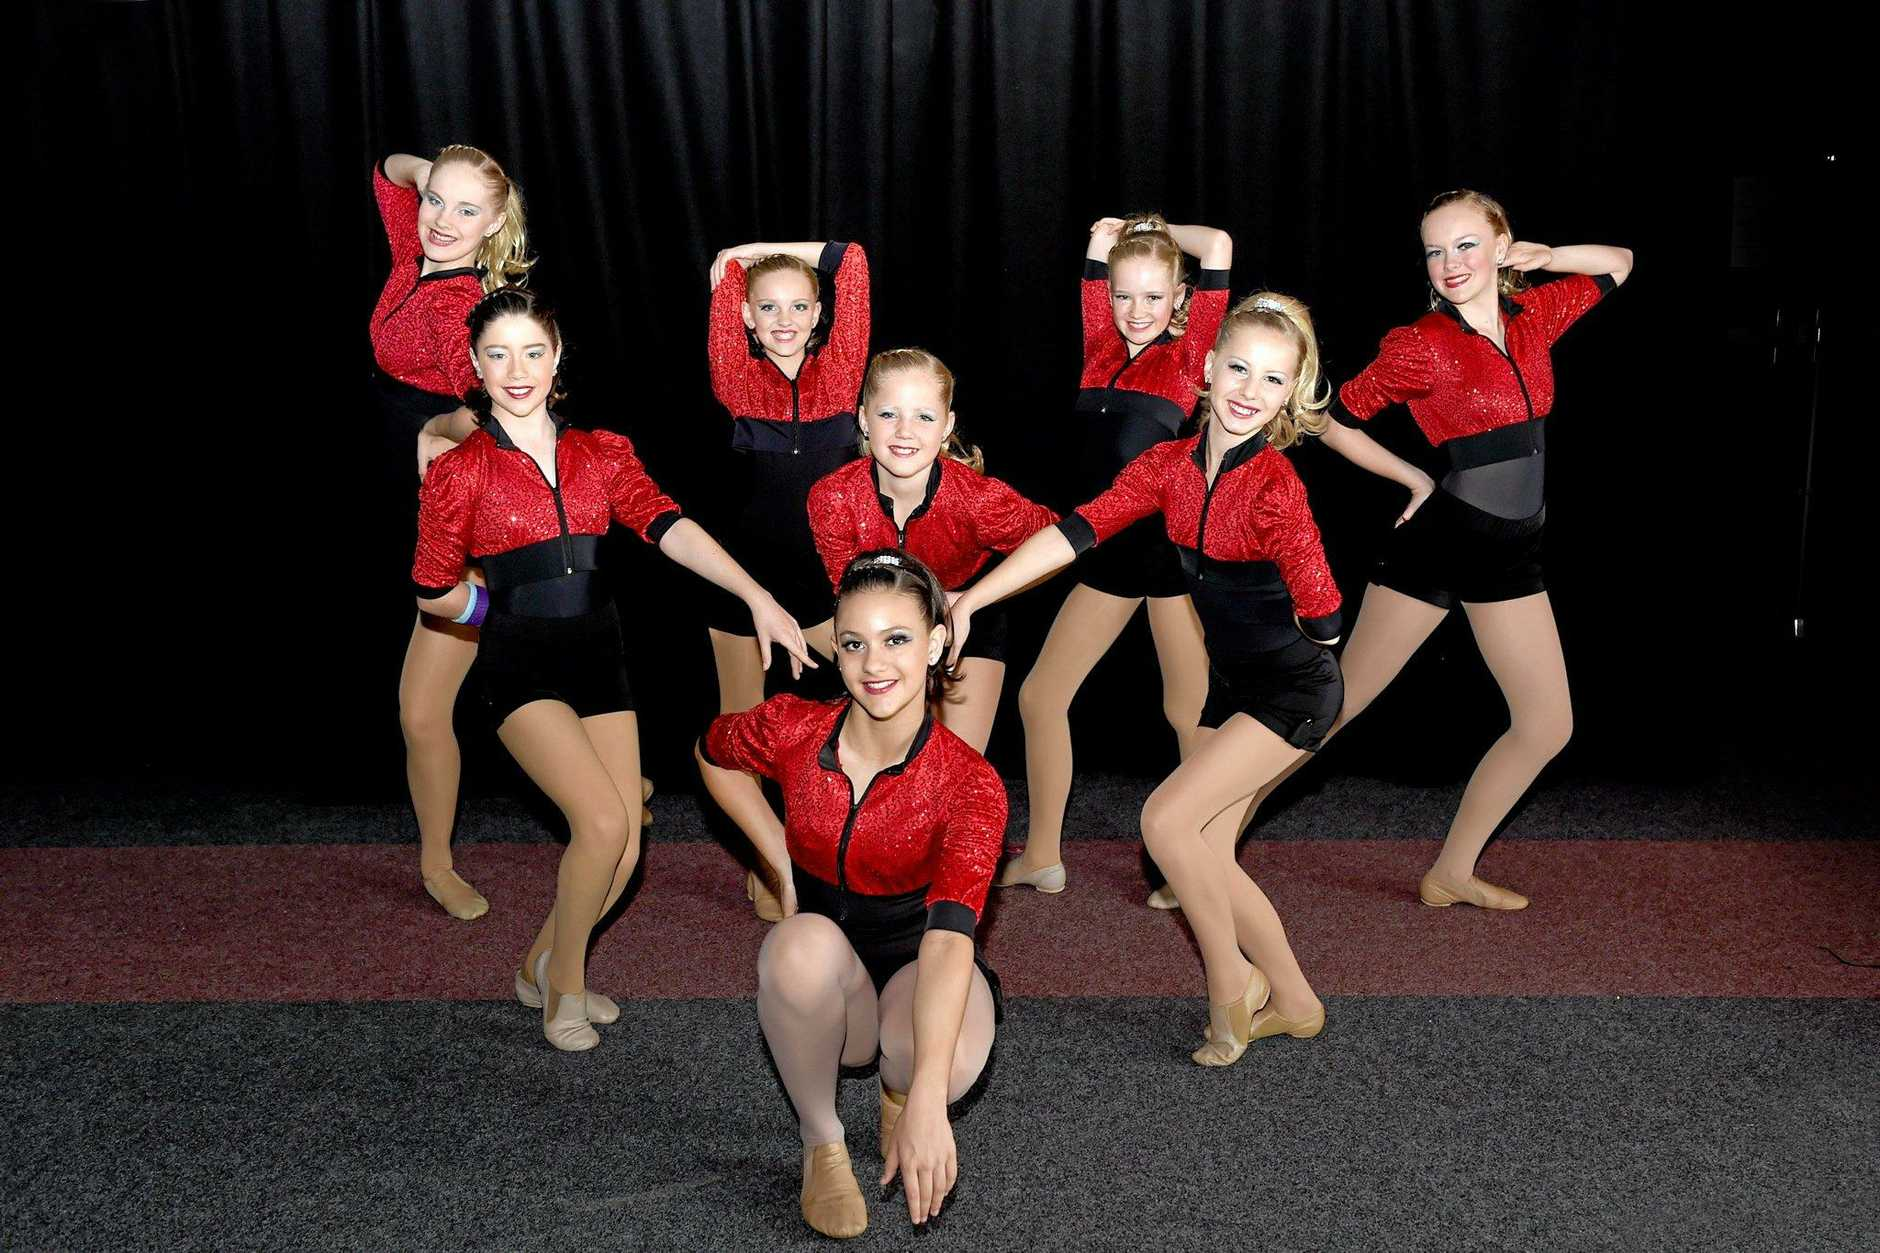 TOP PERFORMANCE: Intermediate performers from Coolum Beach School of Dance get ready for the stage at a past Maryborough Eisteddfod.